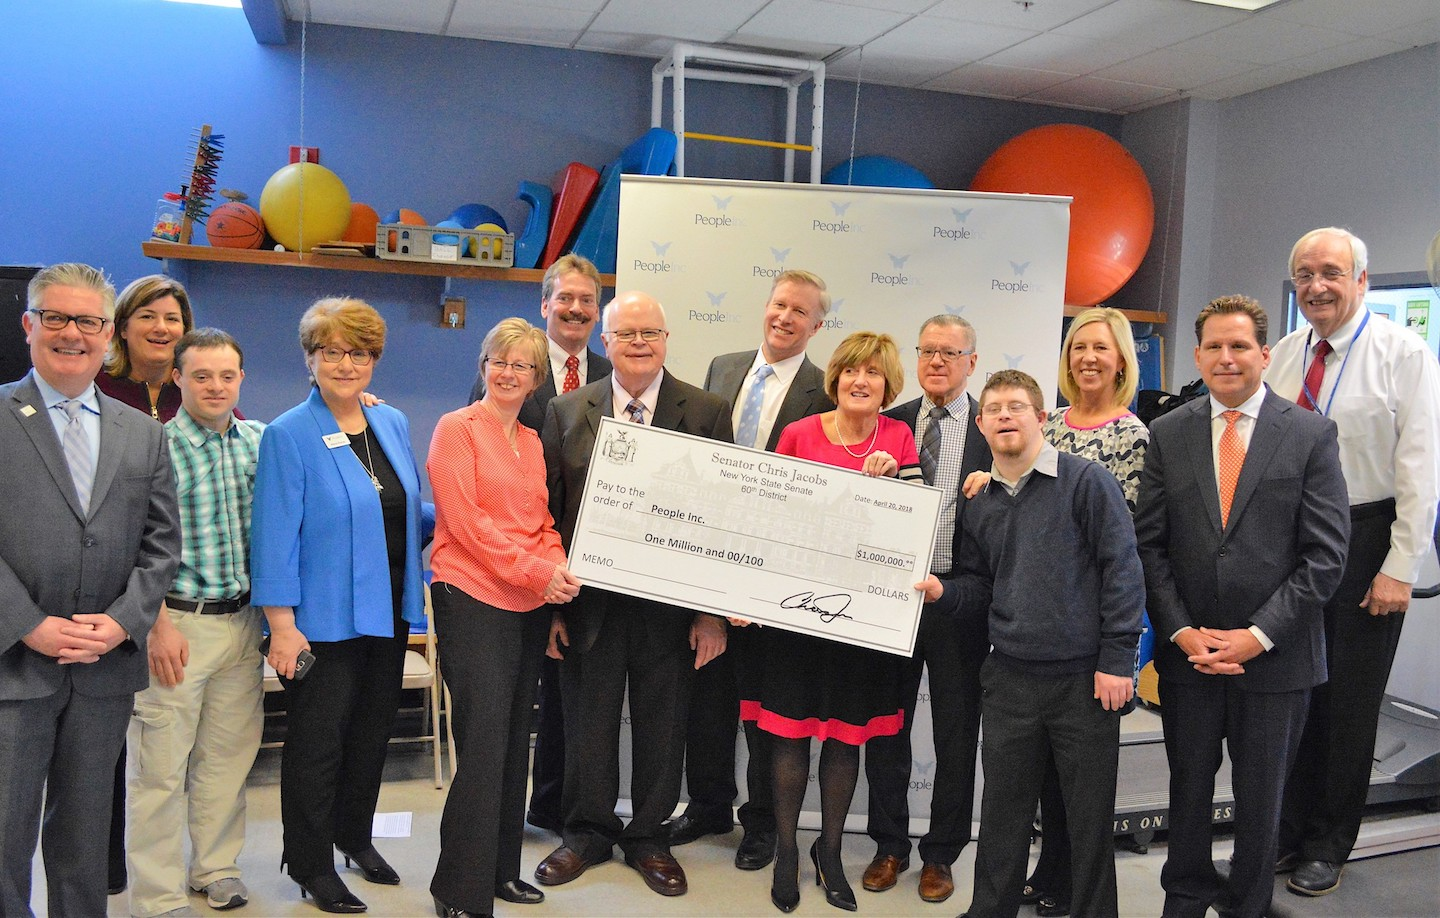 Sen. Chris Jacobs is pictured with People Inc. clients, board members and staff in announcing $1 million in funding he secured to expand health care delivery at People Inc.'s Elmwood Health Center.